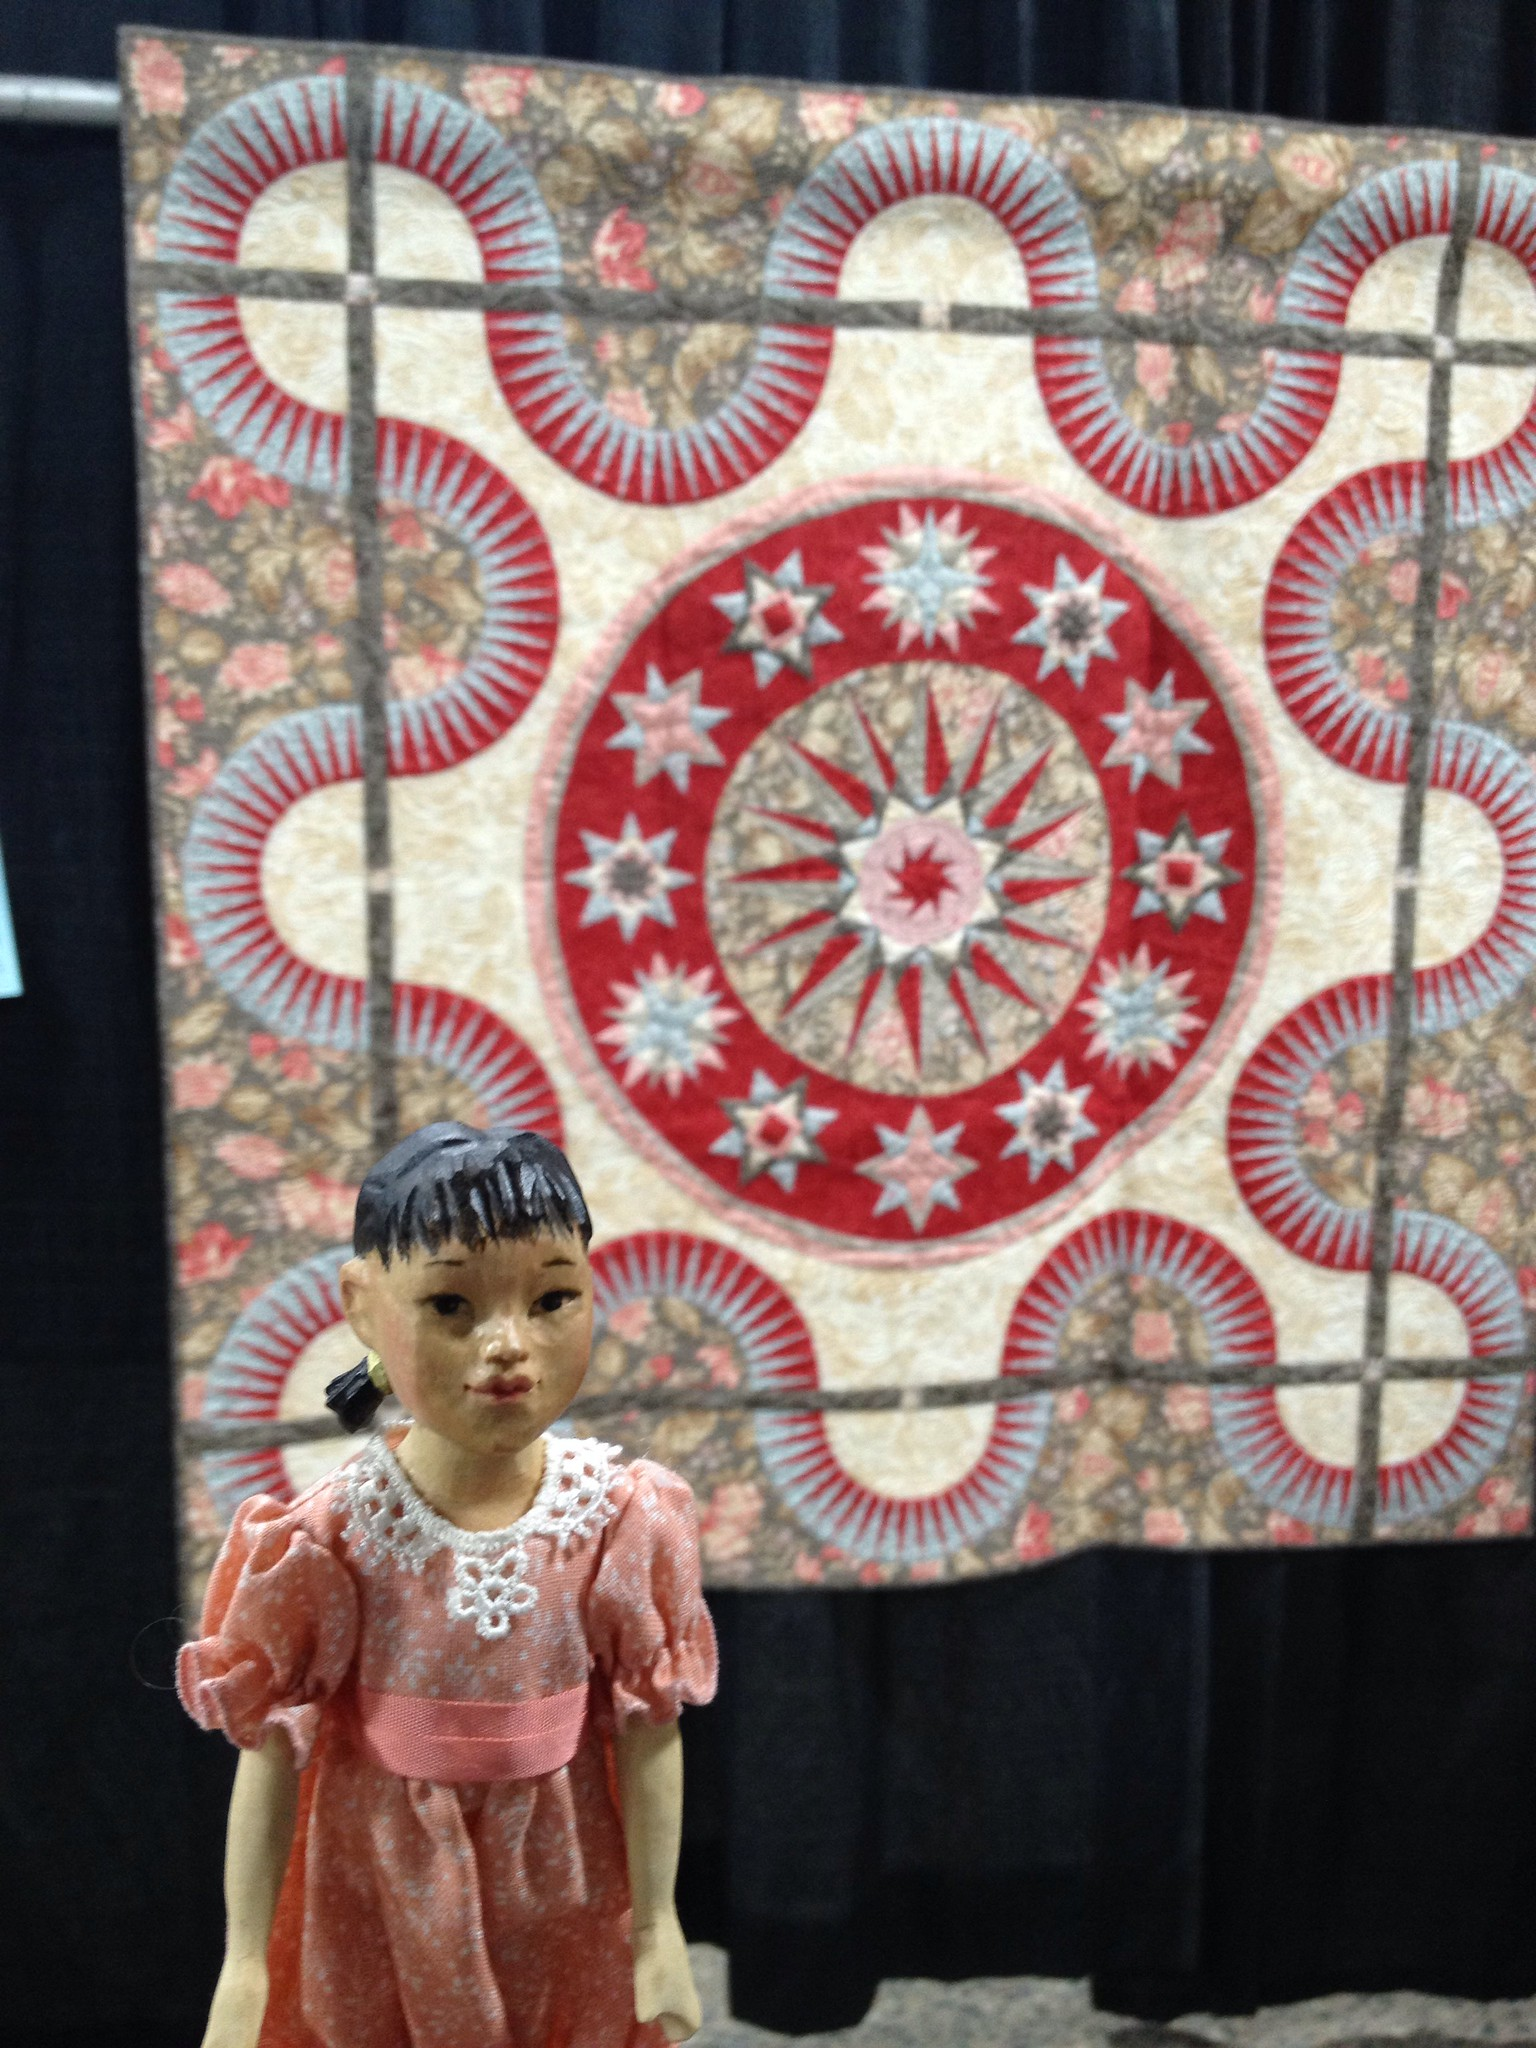 At the Philadelphia Quilt Show